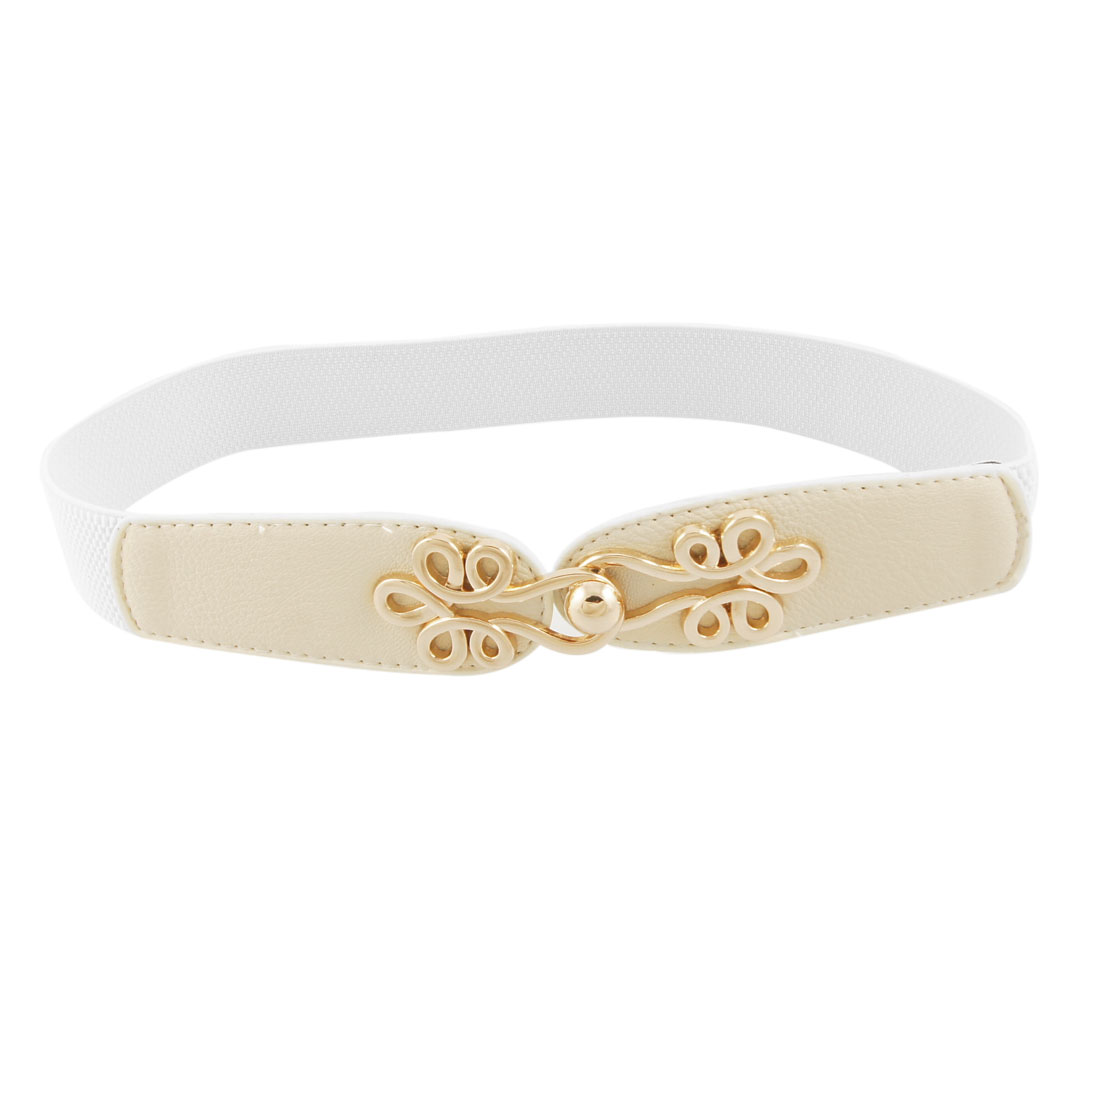 Woman Gold Tone Metal Interlocking Buckle Elastic Cinch Belt Off White